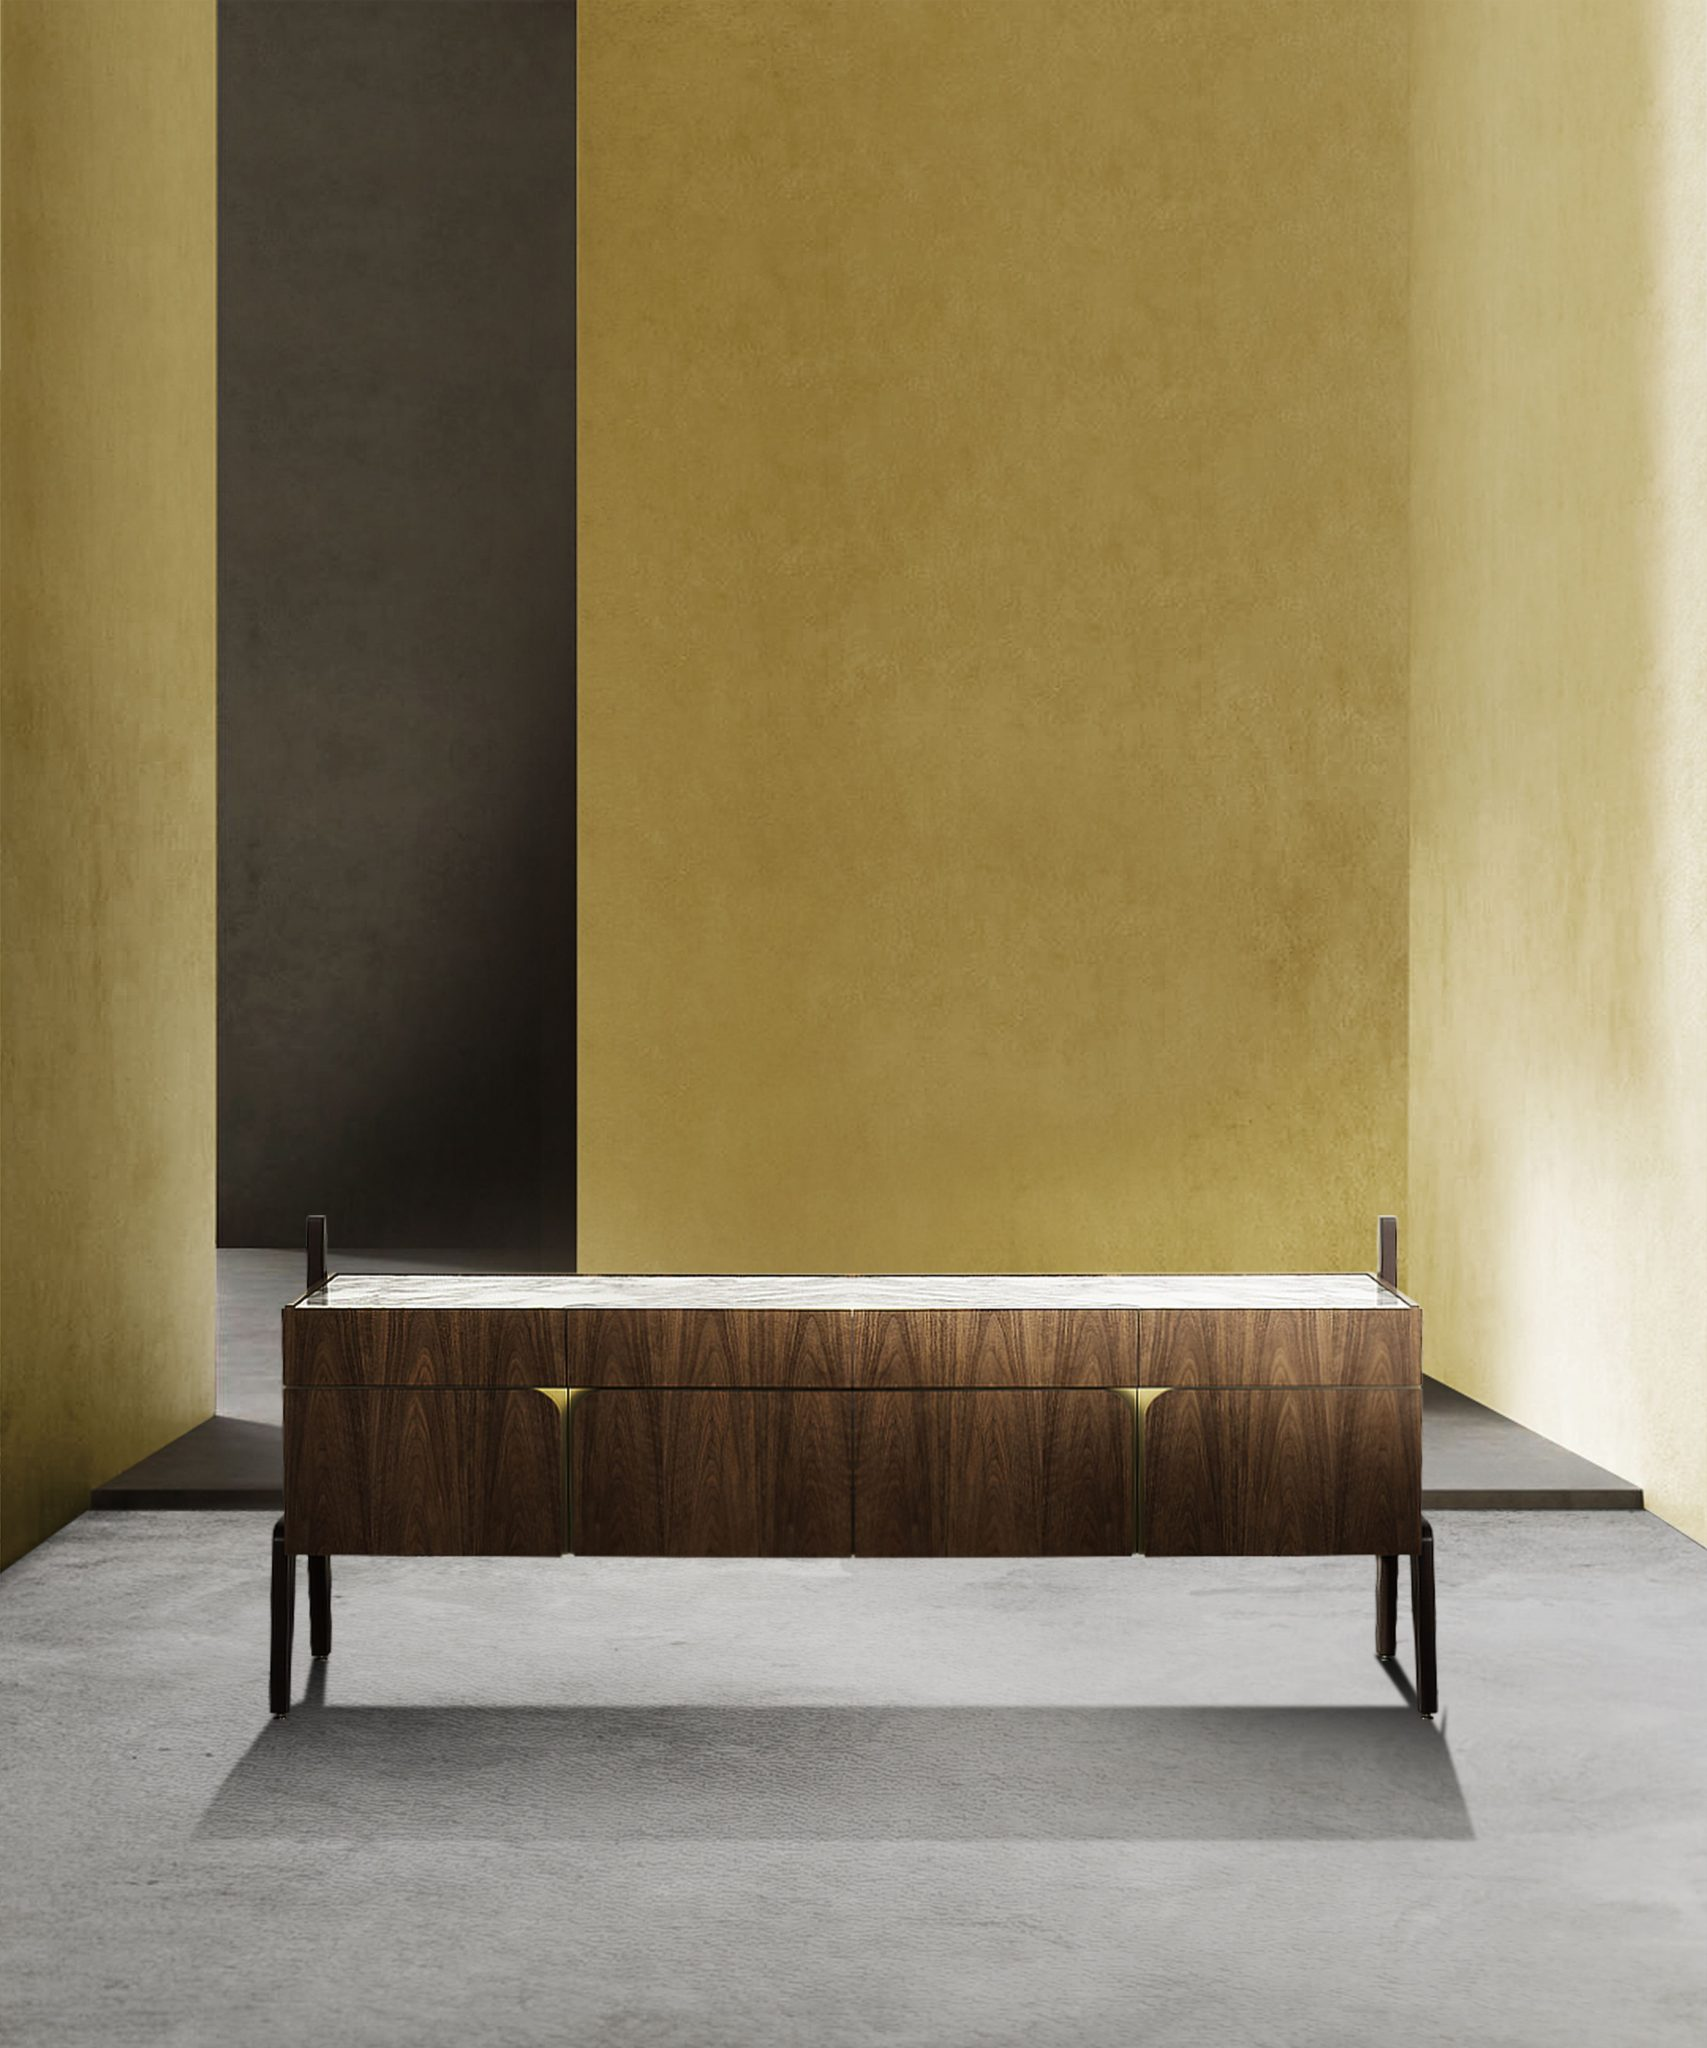 Sideboard as a Statement Piece: The New Collection by Carlo Donati